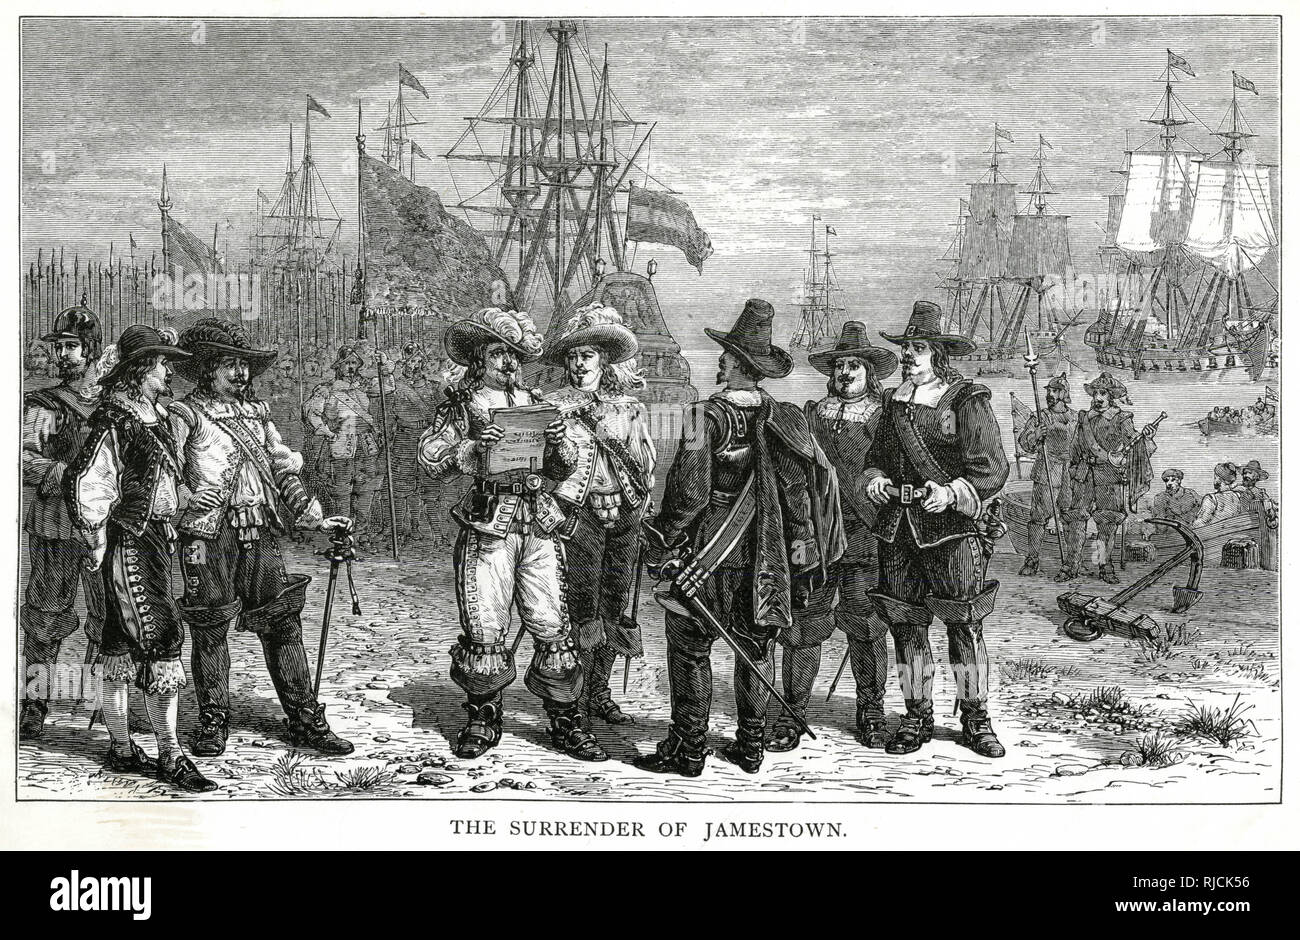 The Governor of Jamestown and the Jamestown Council stand